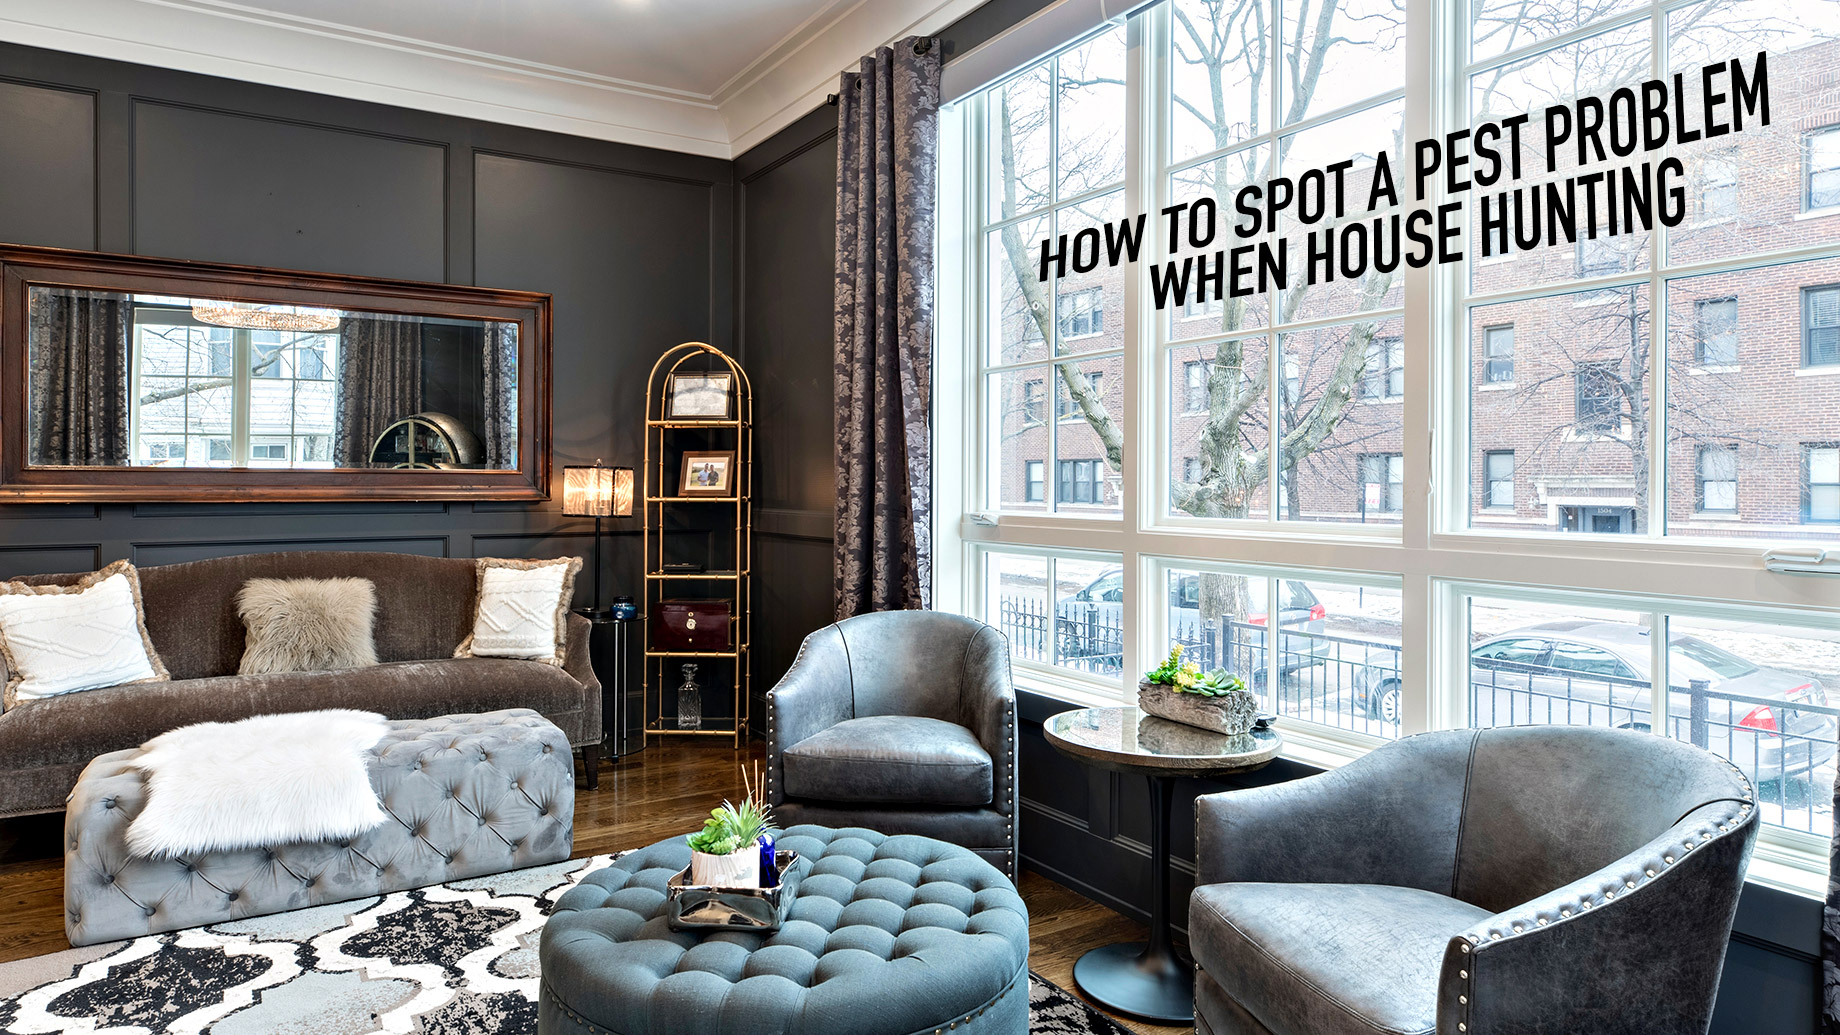 How To Spot A Pest Problem When House Hunting